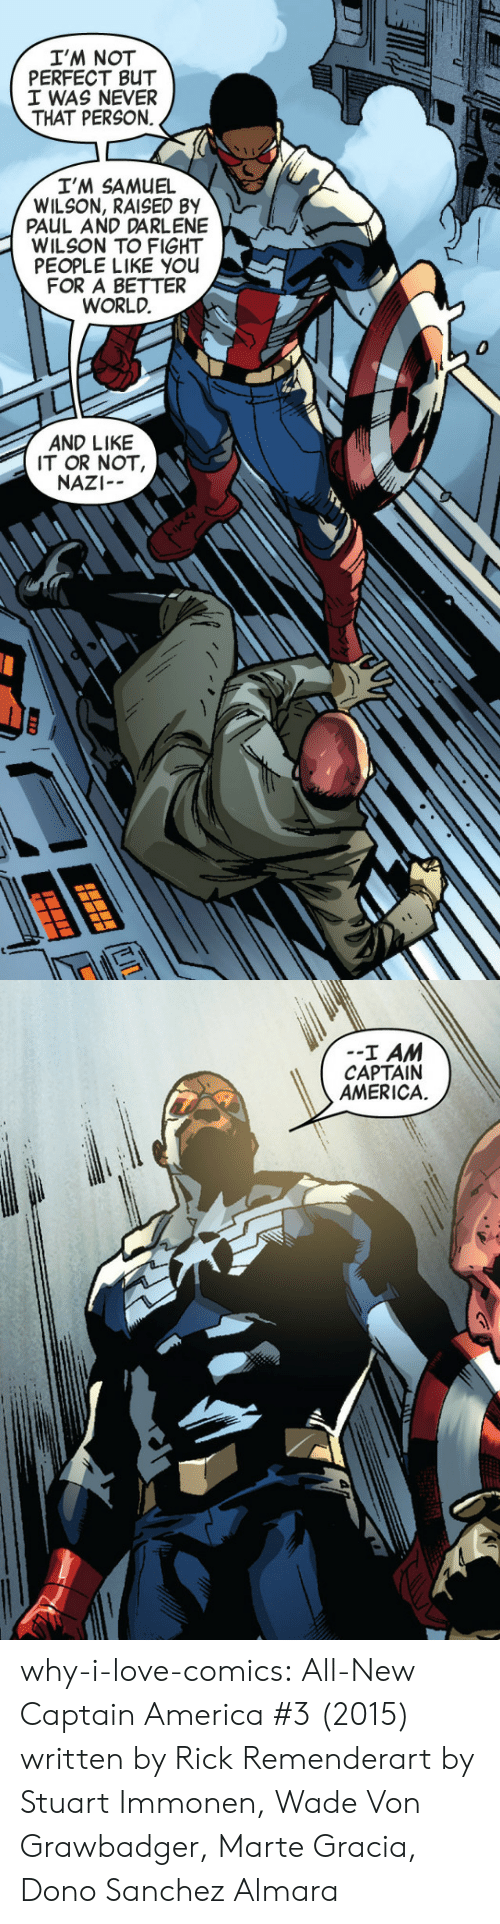 America, Love, and Target: I'M NOT  PERFECT BUT  I WAS NEVER  THAT PERSON.  I'M SAMUEL  WILSON, RAISED BY  PAUL AND DARLENE  WILSON TO FIGHT  PEOPLE LIKE YOu  FOR A BETTER  WORLD.  0  AND LIKE  IT OR NOT  NAZI--   --I AM  CAPTAIN  AMERICA.  ti why-i-love-comics: All-New Captain America #3 (2015)  written by Rick Remenderart by Stuart Immonen, Wade Von Grawbadger, Marte Gracia,  Dono Sanchez Almara